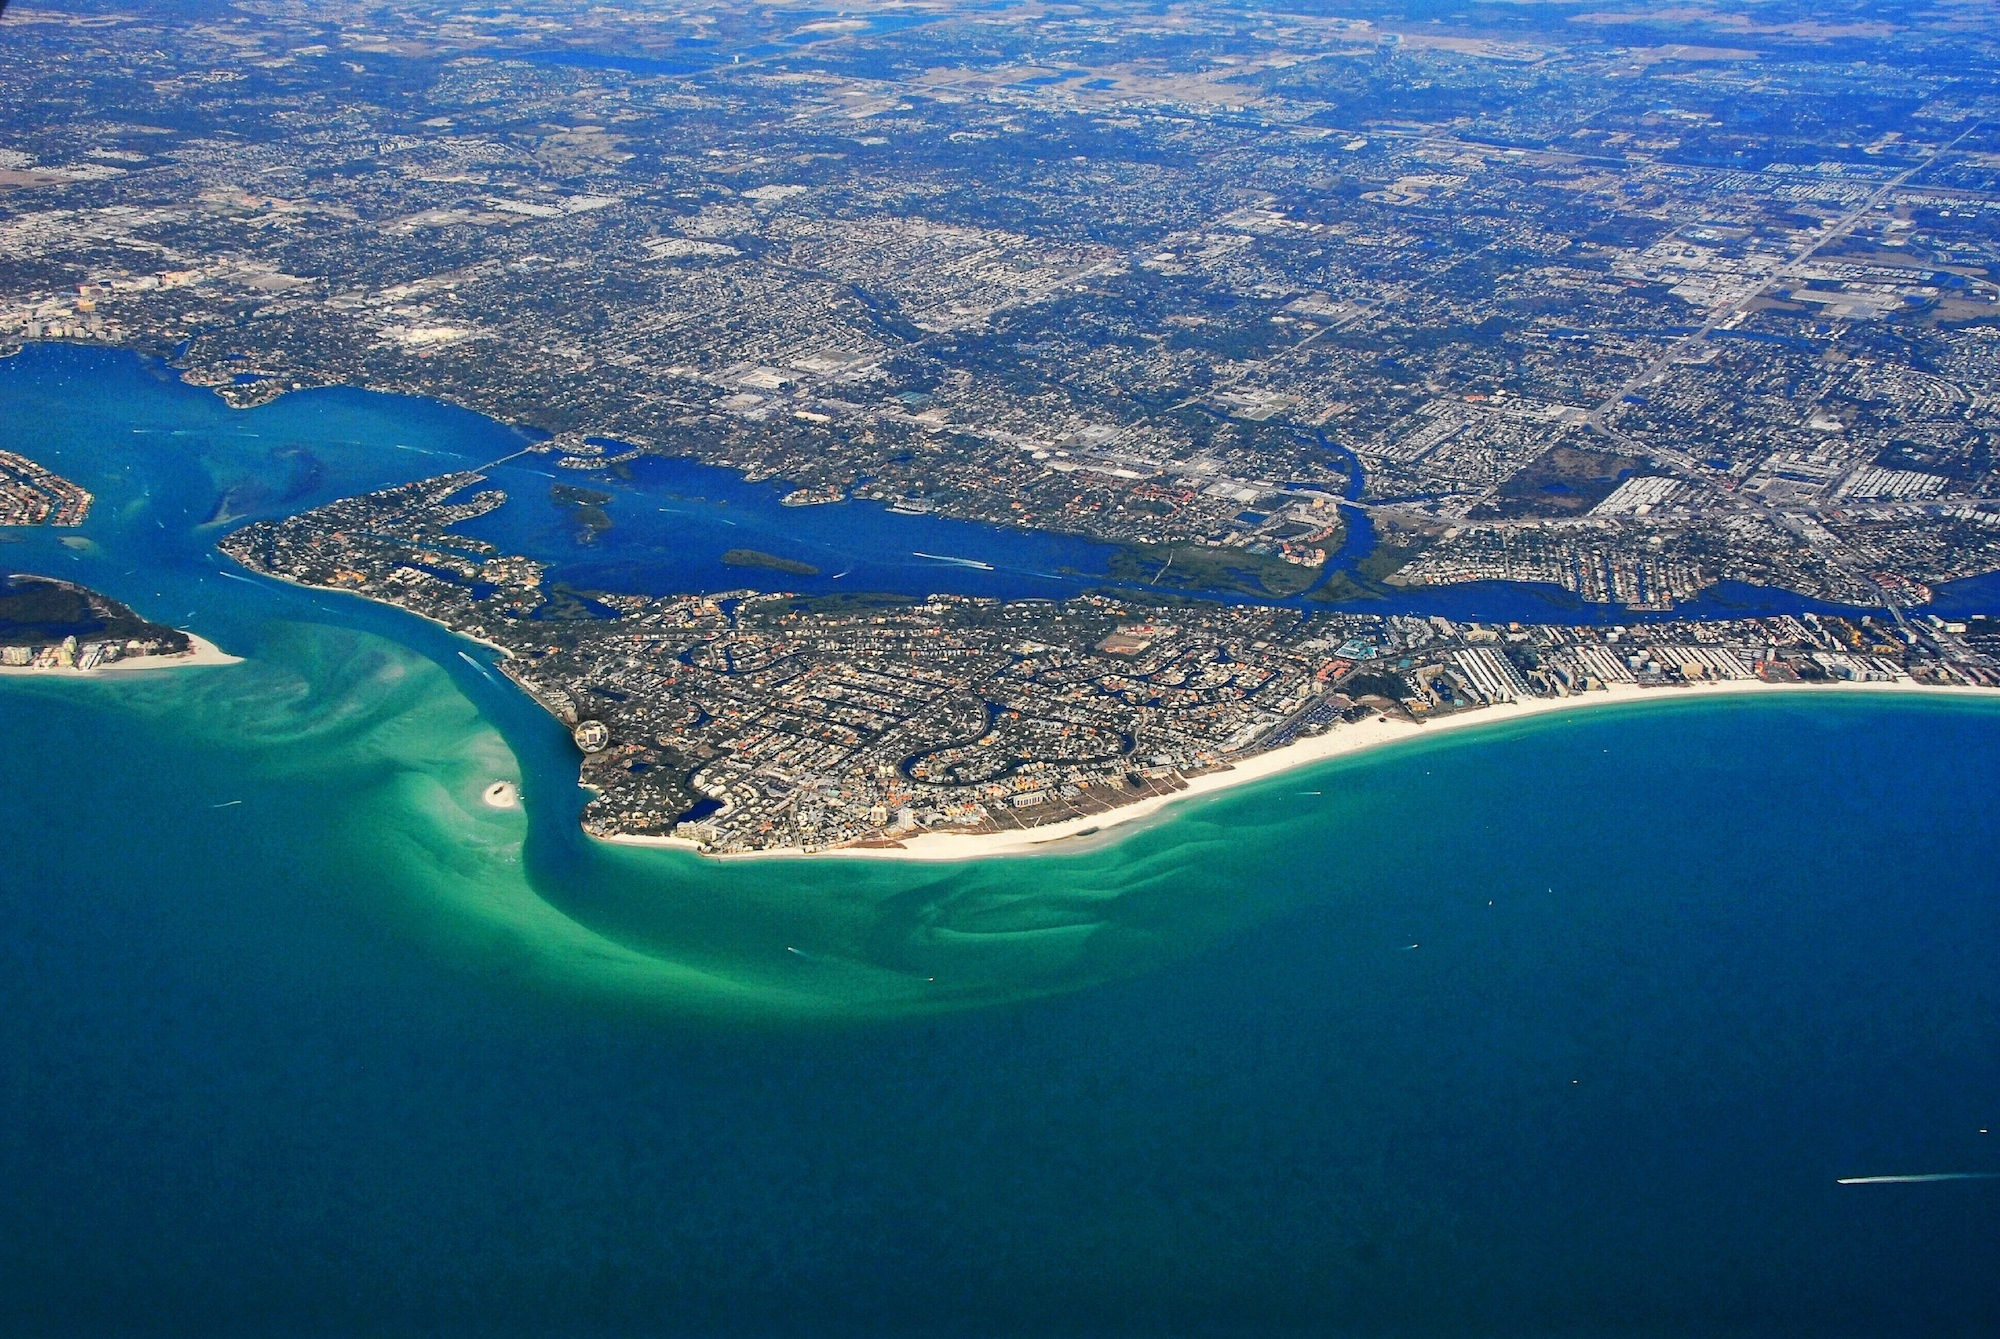 Aerial View of Gulf Coast